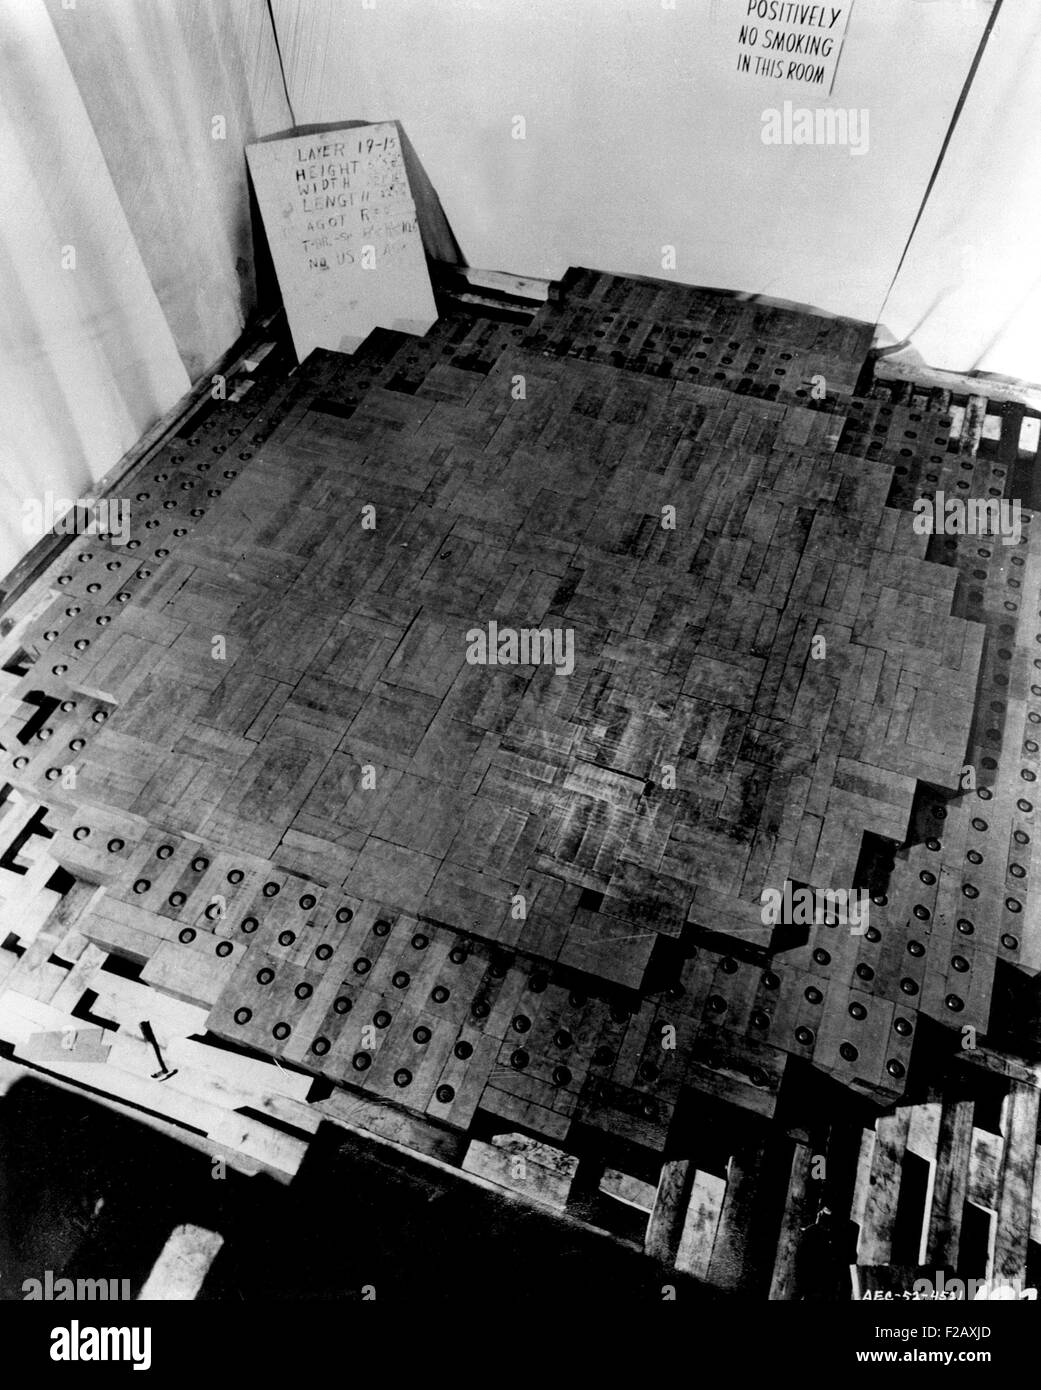 Photograph made during the construction of the Chicago Pile-1 (CP-1), the first nuclear reactor. It was a pile of - Stock Image